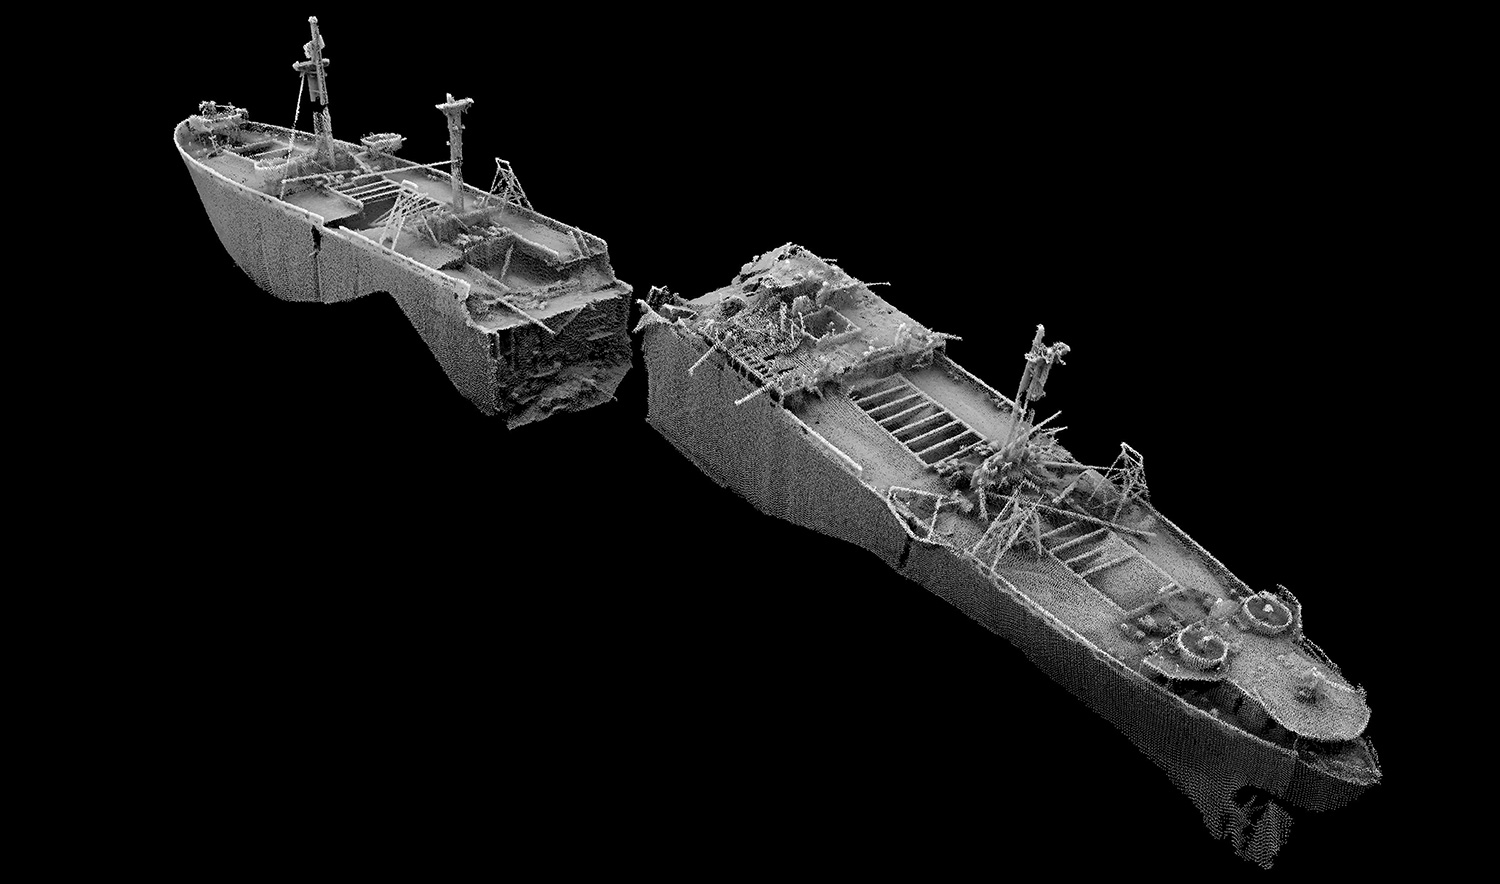 The sonar picture shows the SS Richard Montgomery in detail (Picture: Maritime Coastguard Agency)